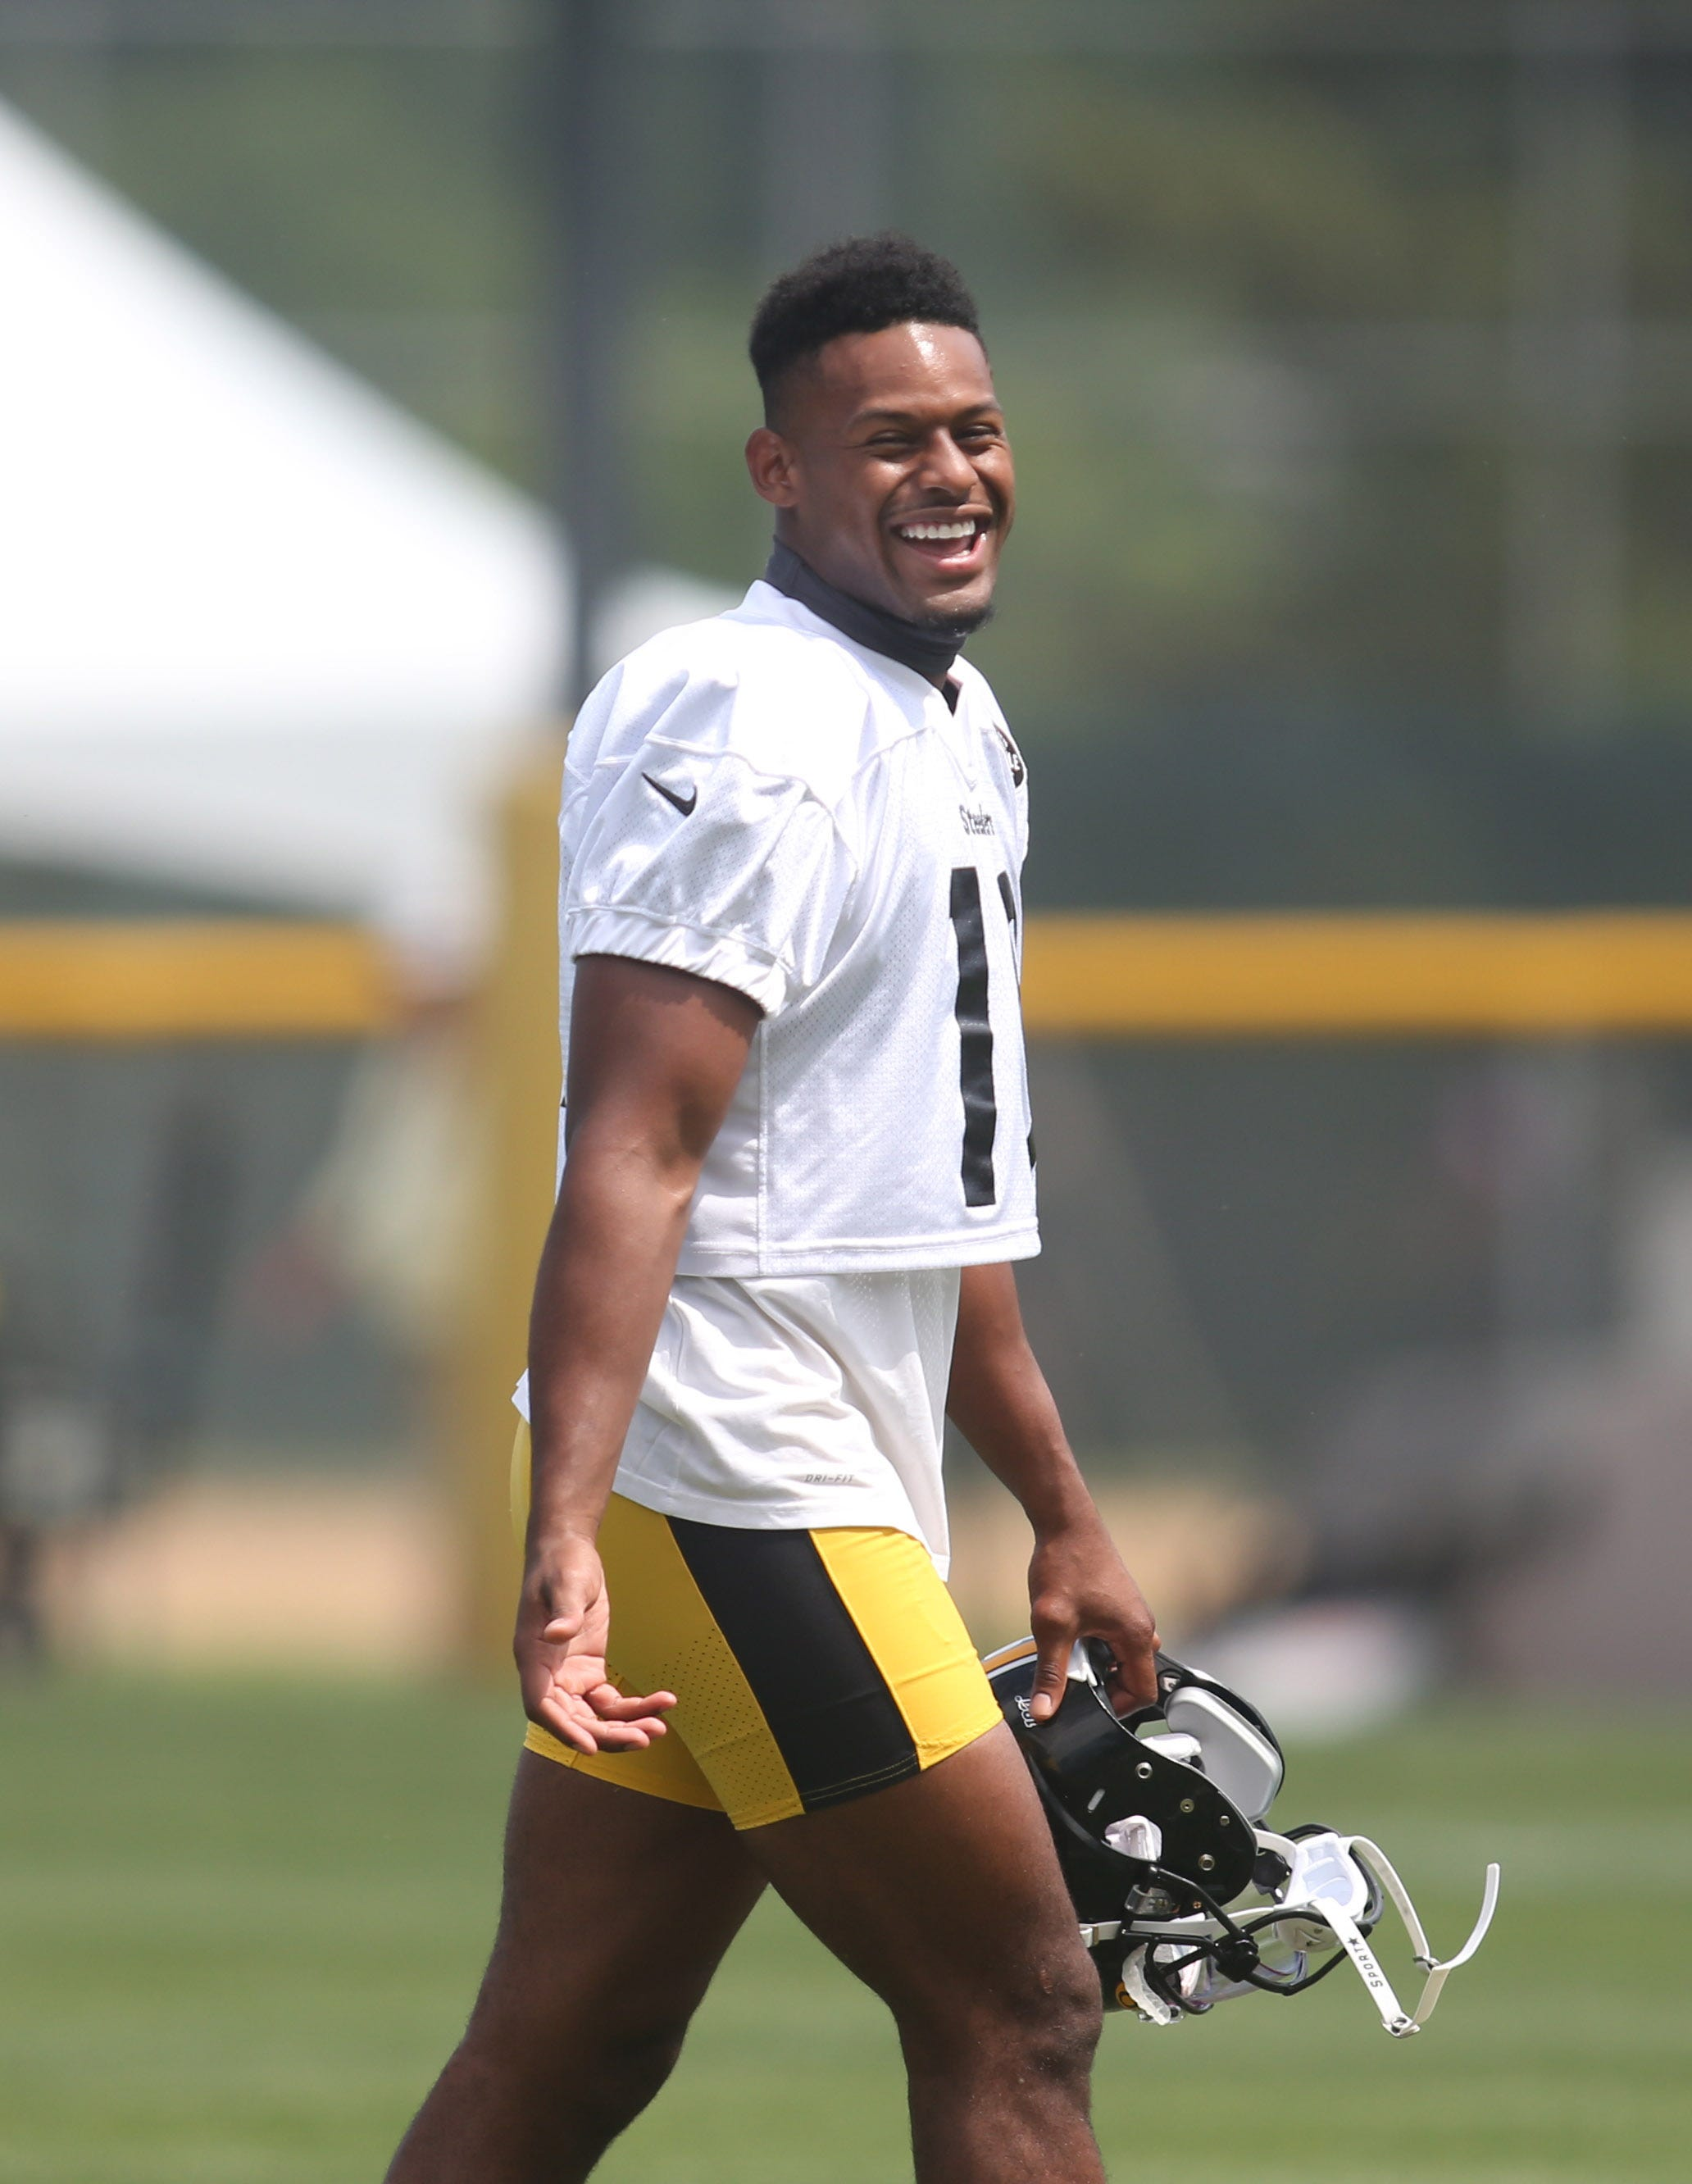 JuJu Smith-Schuster purchases season tickets for fan who got tattoo of his signature on head